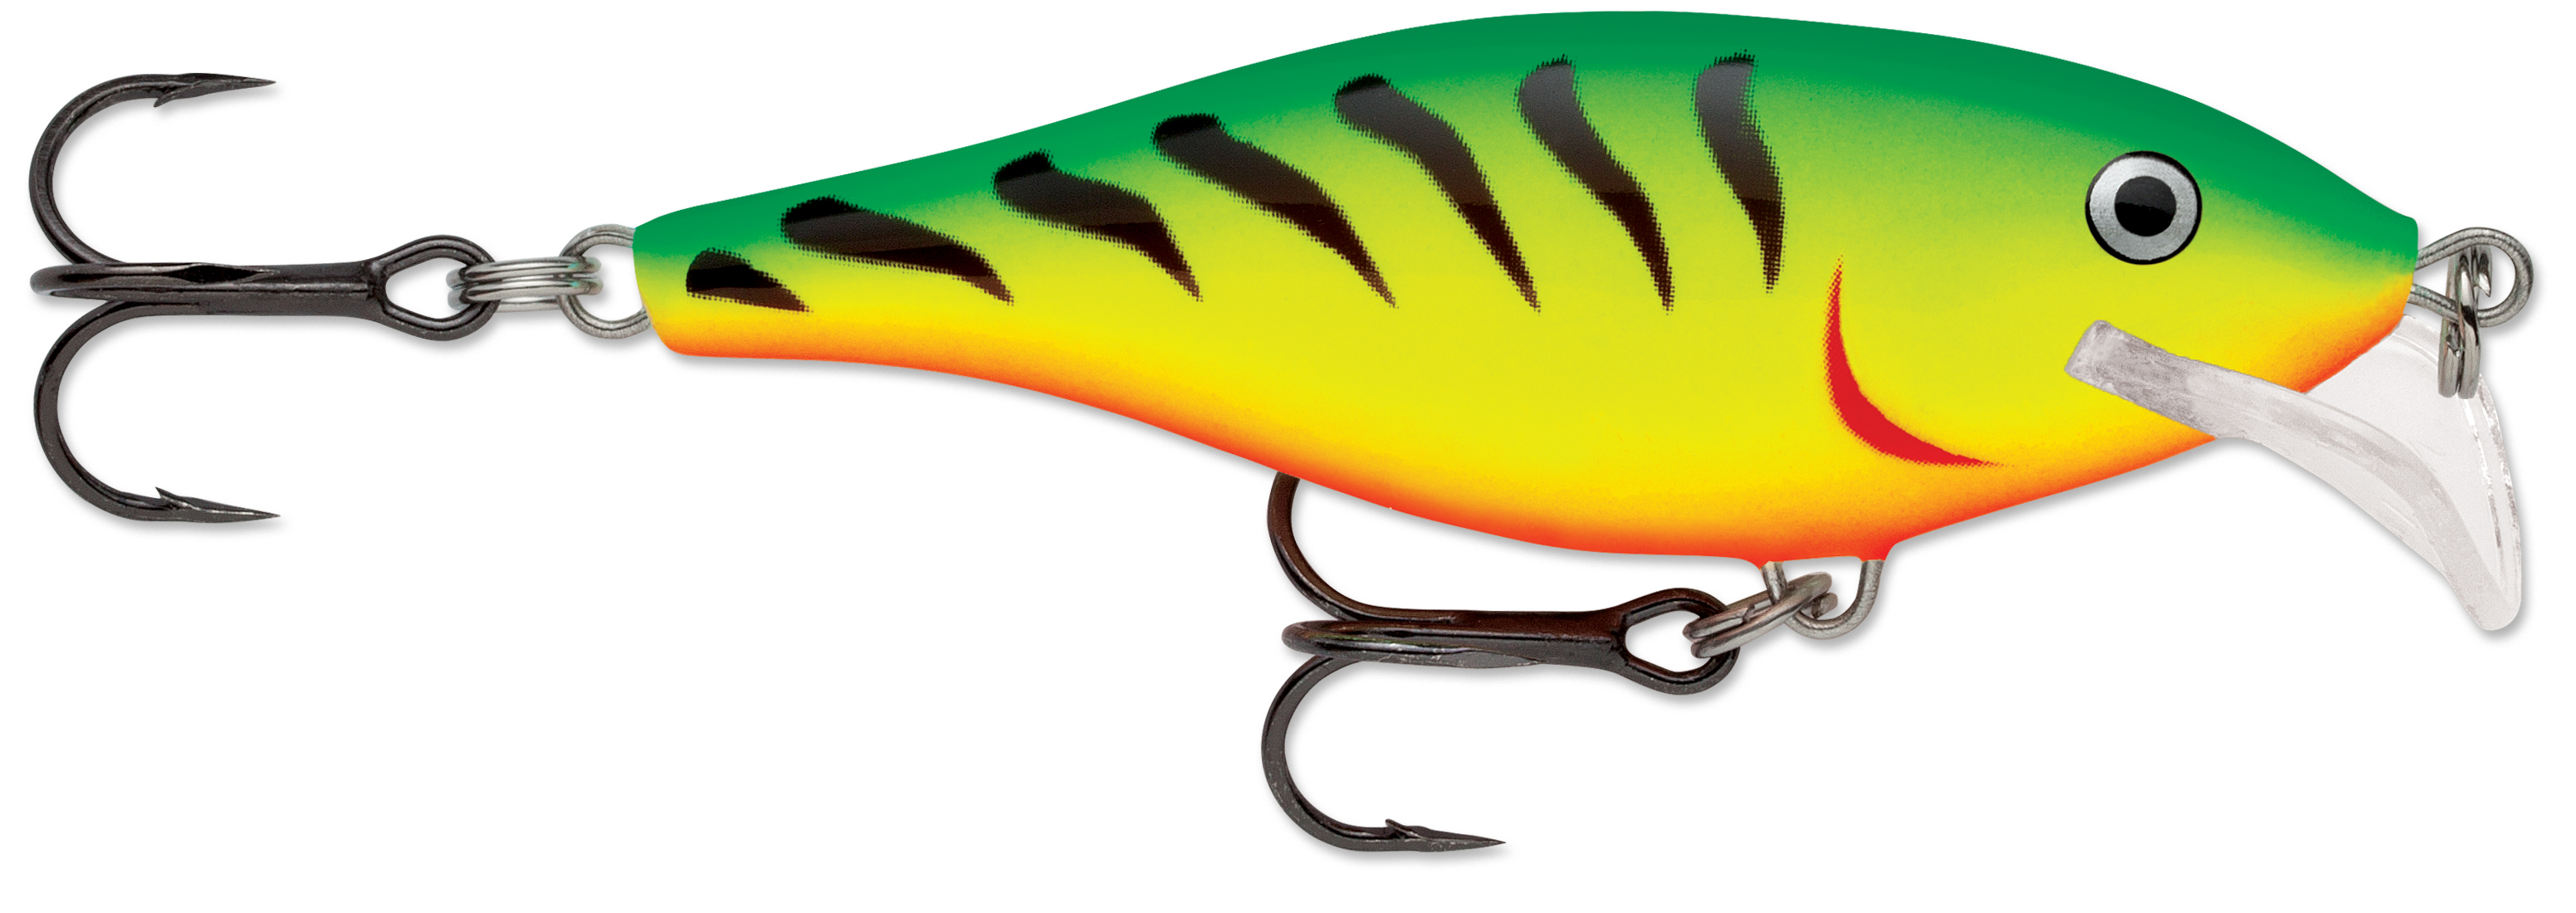 Rapala scrs scatter rap shad kabele 39 s trading post for Pictures of fishing lures